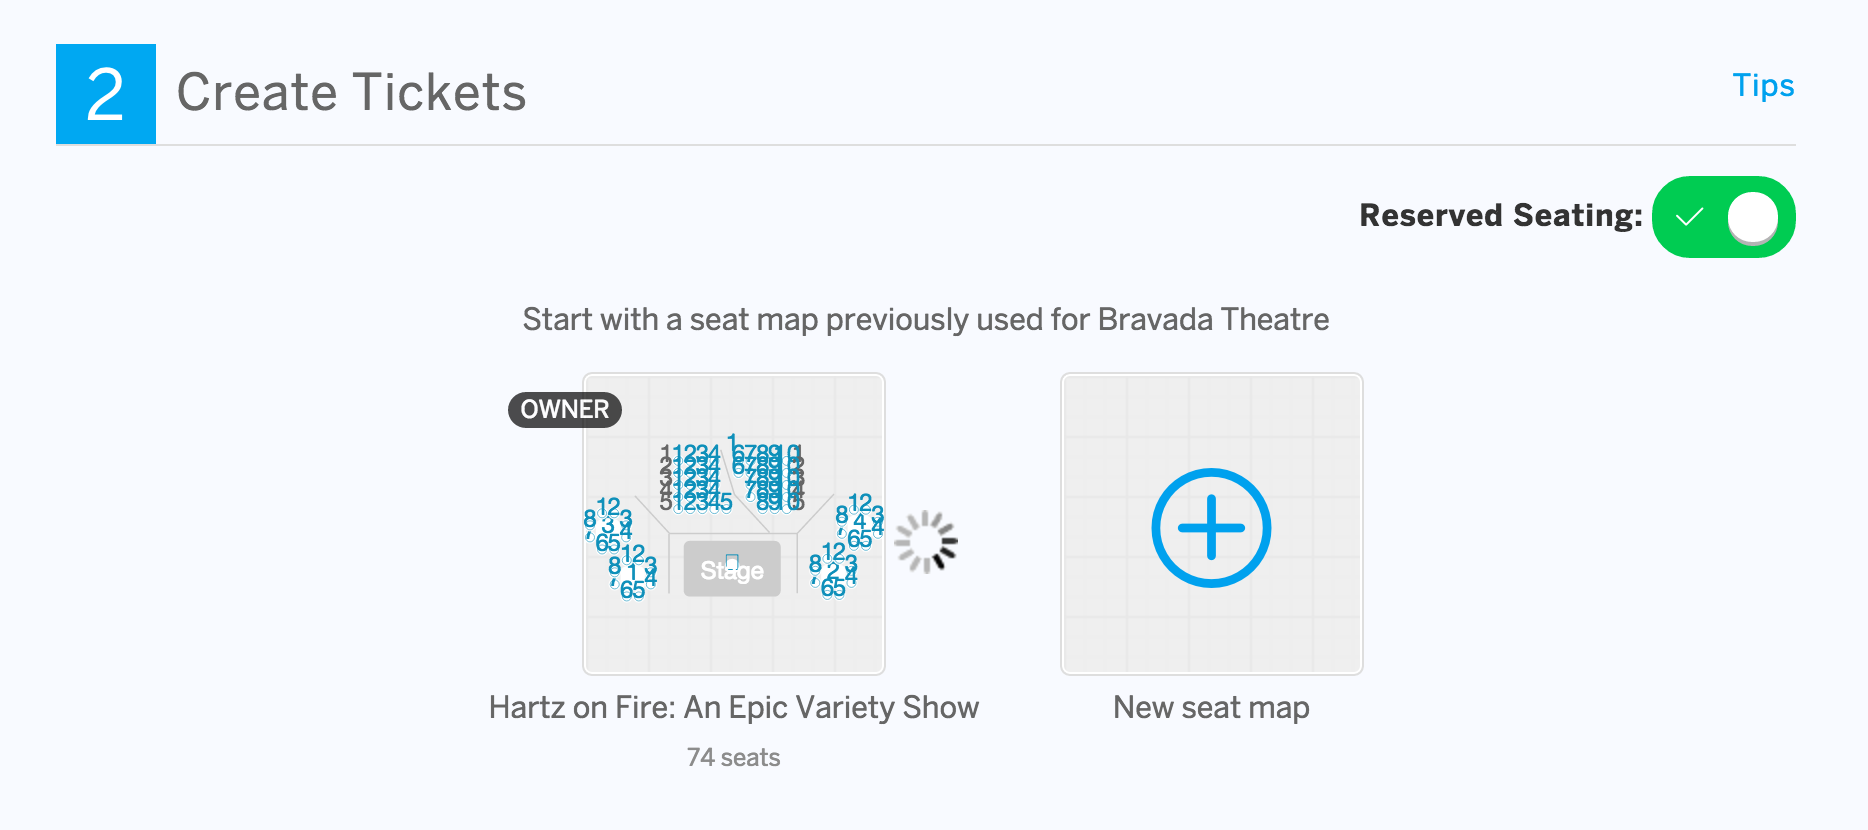 Other Seat Maps for this venue will appear when you set the location of an event. If you created the Seat Map, you'll see a label of Owner.